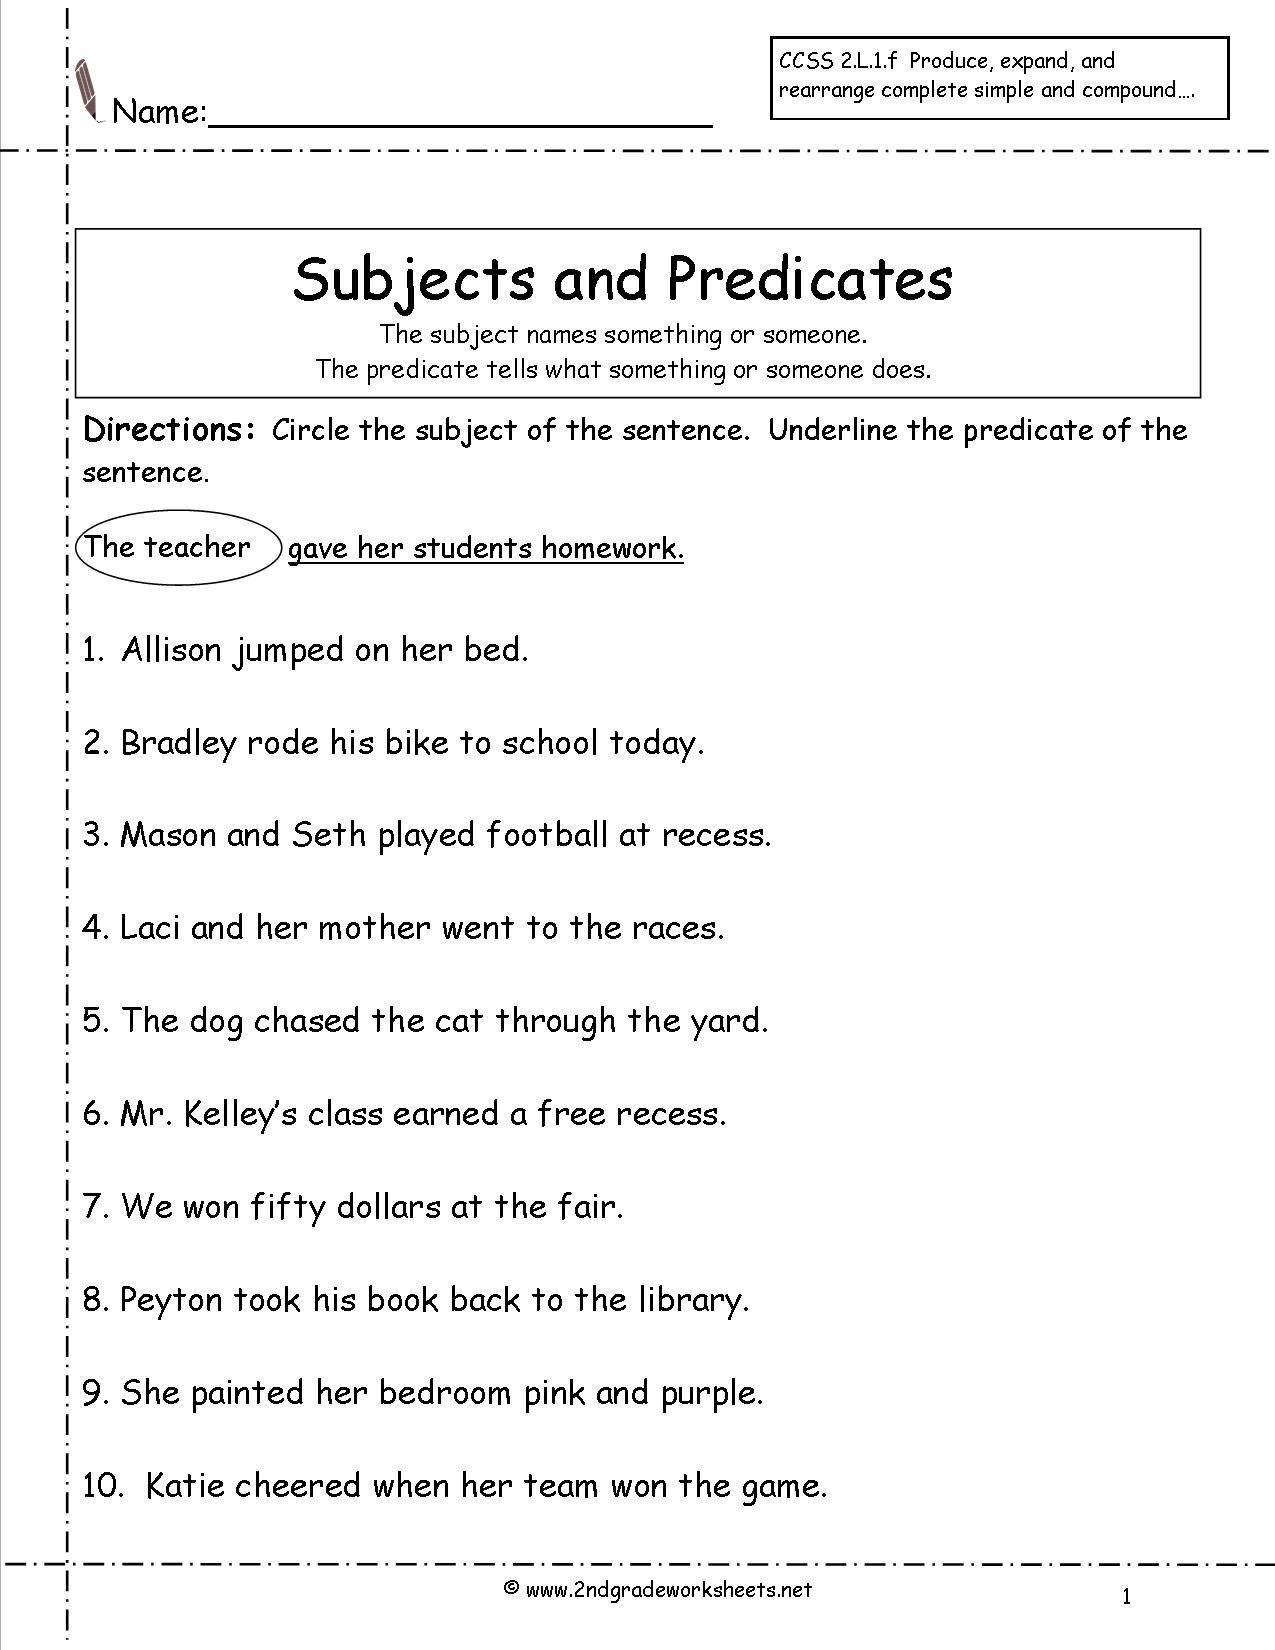 Subject Predicate Worksheets 2nd Grade Google Search Kid Stuff